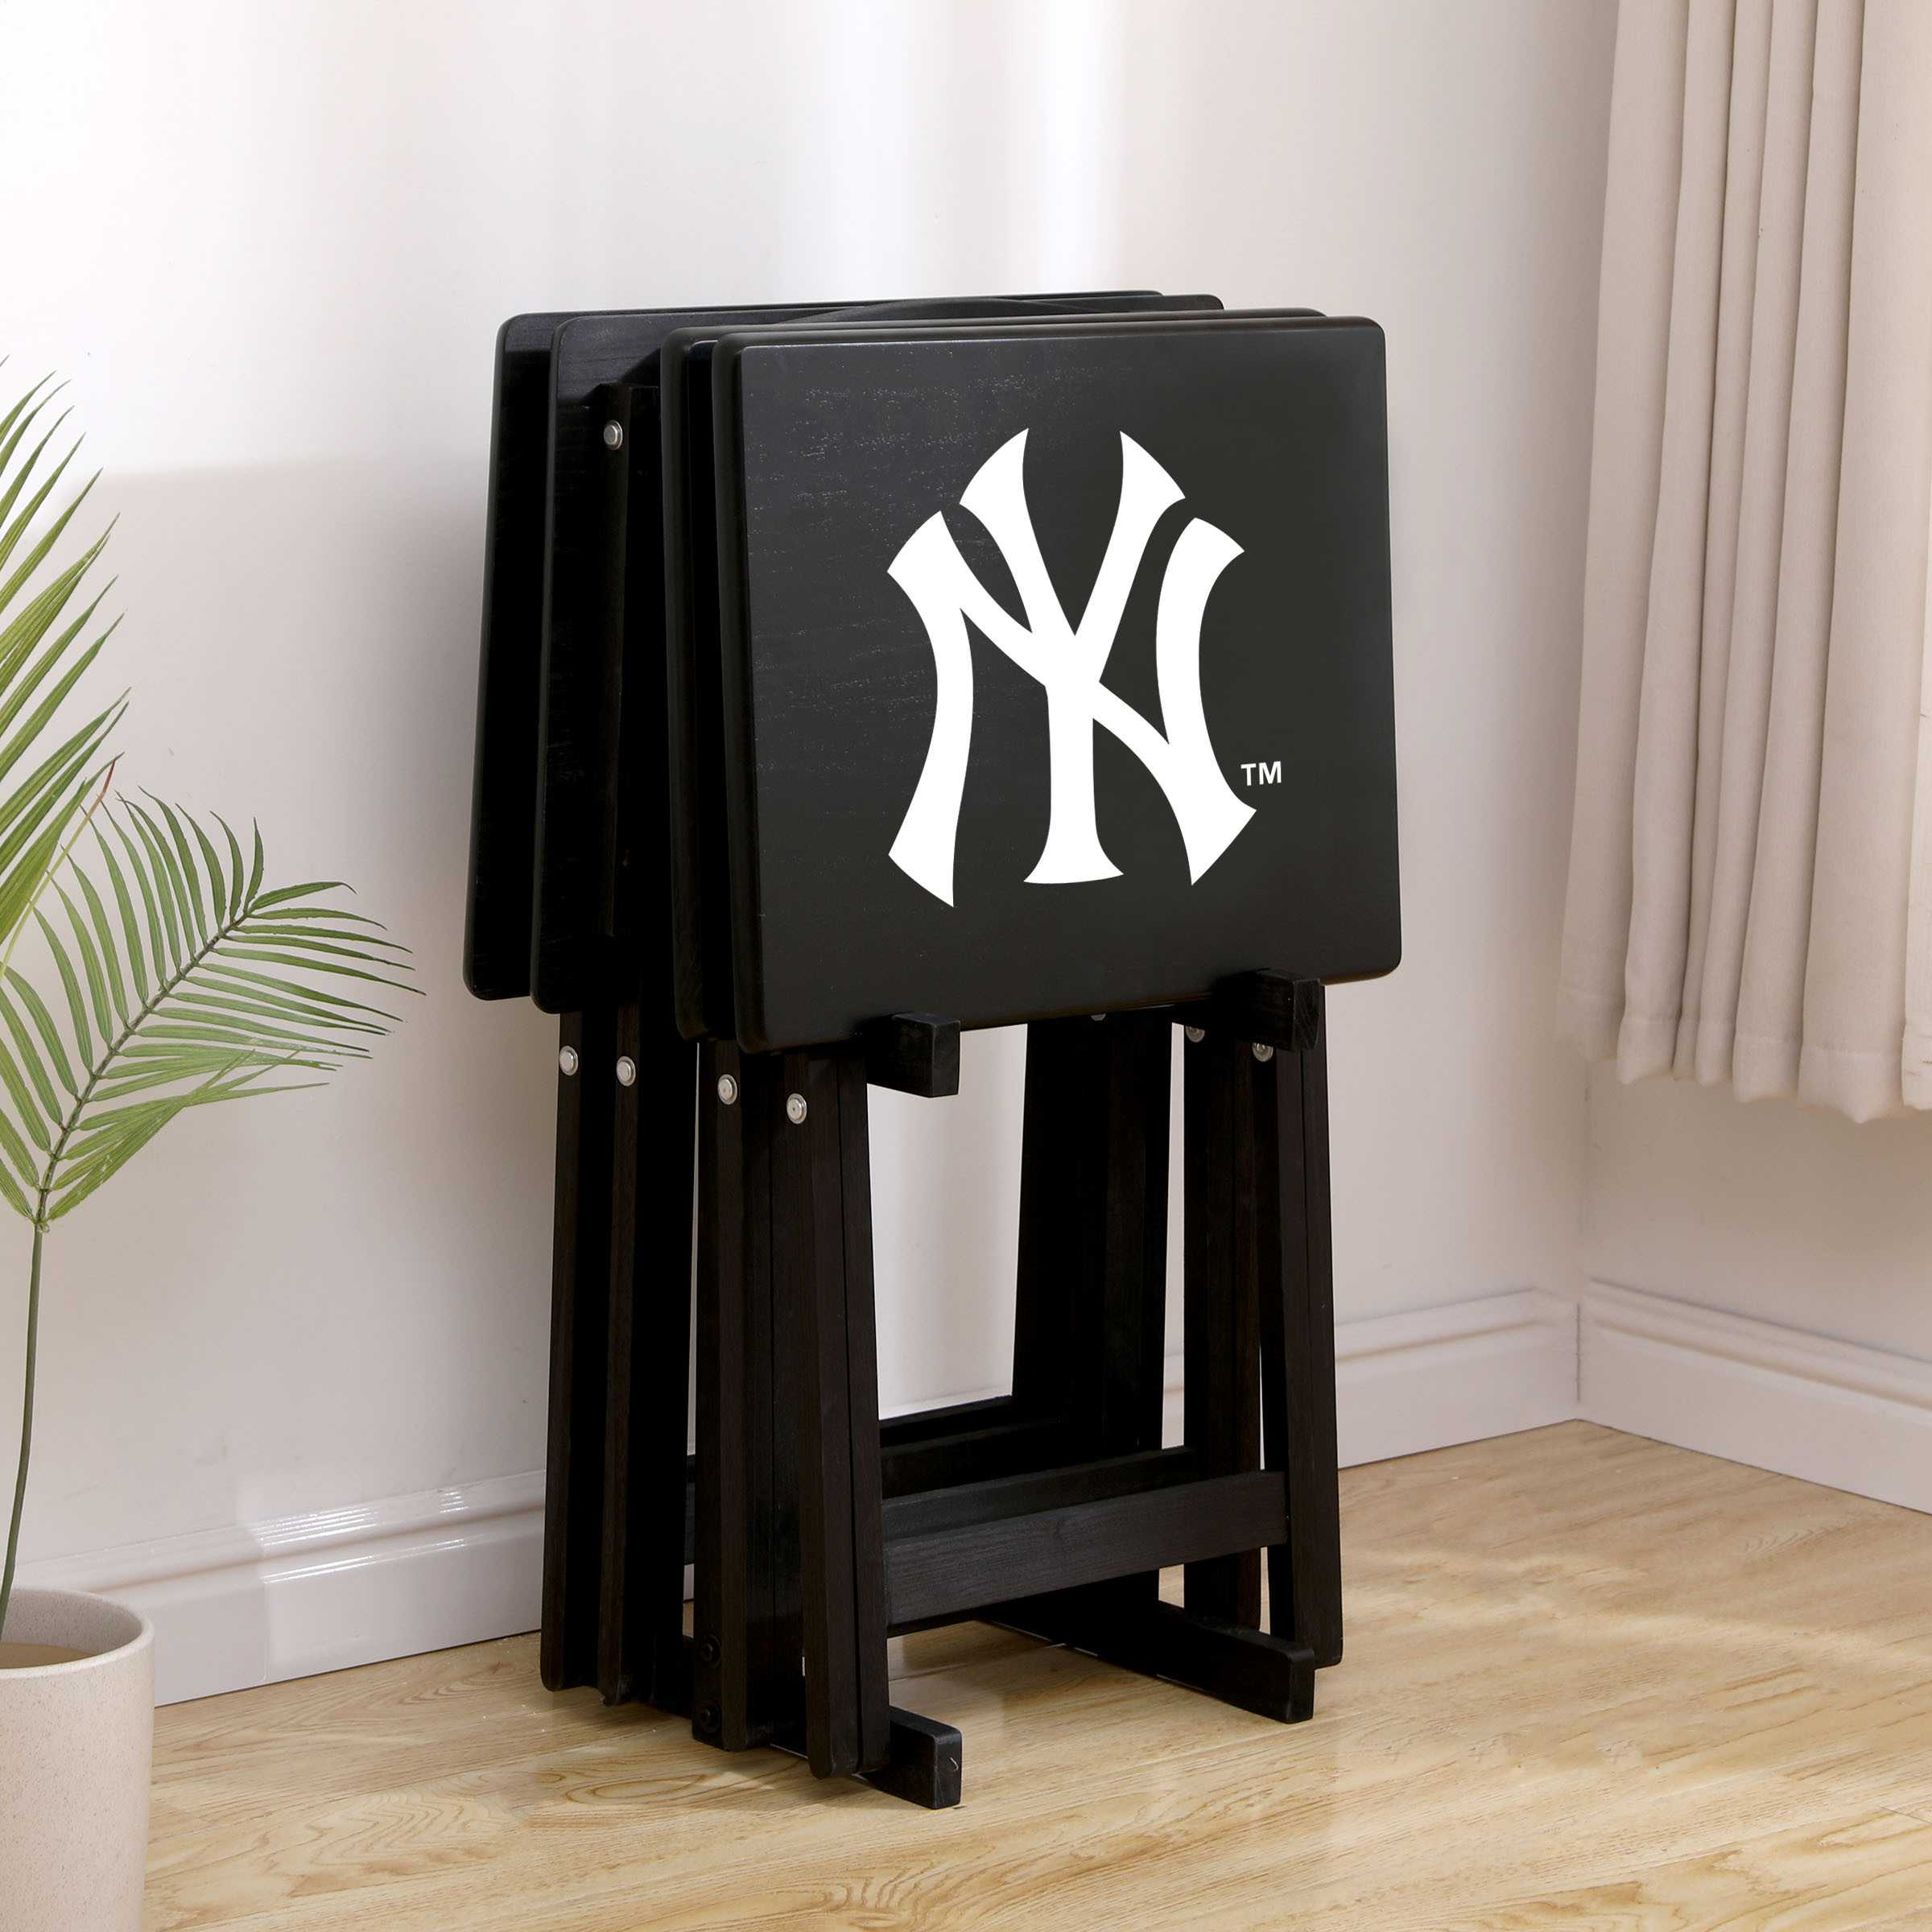 NEW YORK YANKEES 4 TV TRAYS WITH STAND